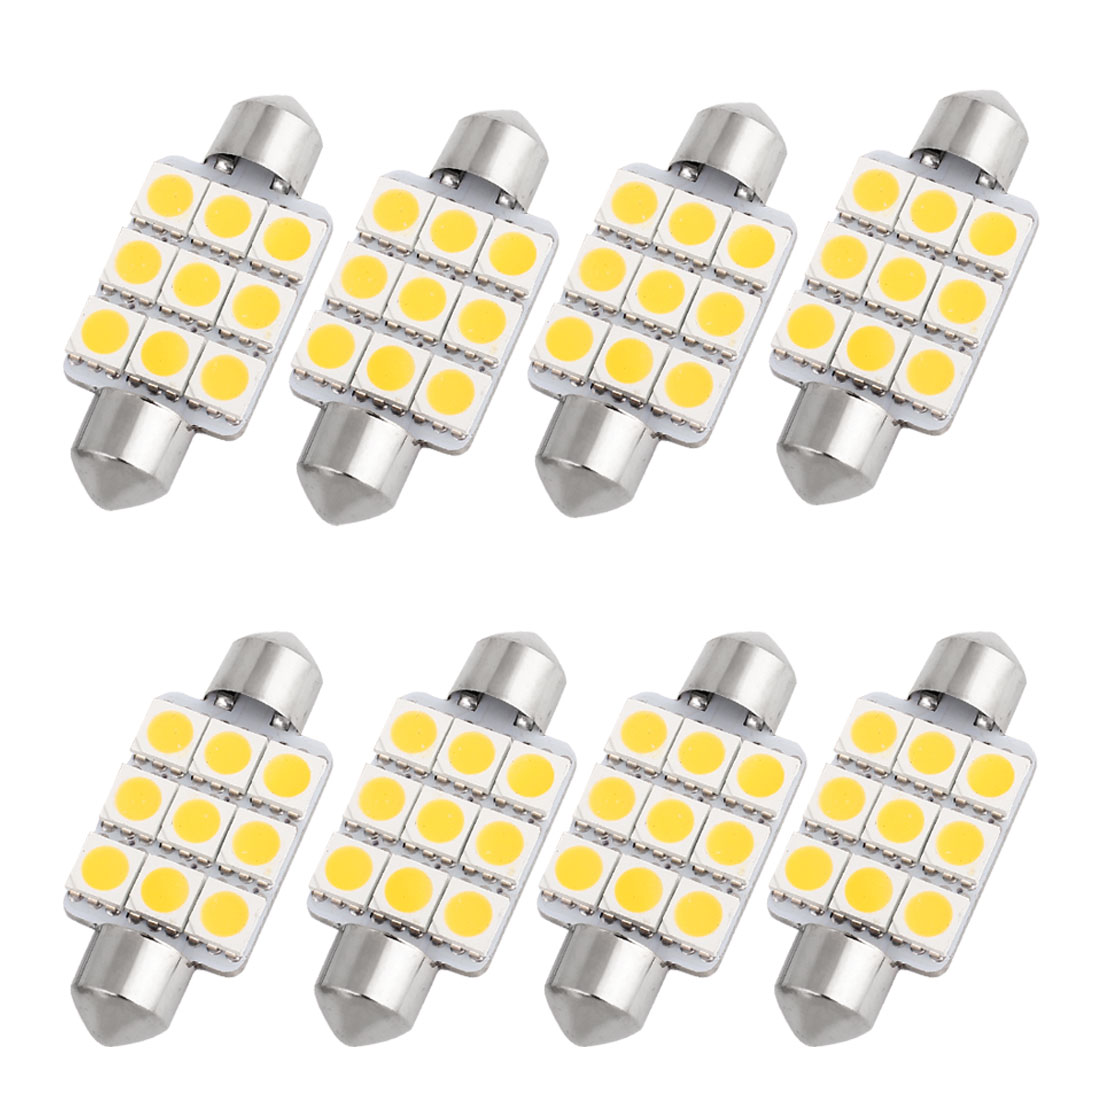 8PCS Warm White 9-SMD 5050 LED 39mm Festoon Map Light 6423 6461 6418 Internal